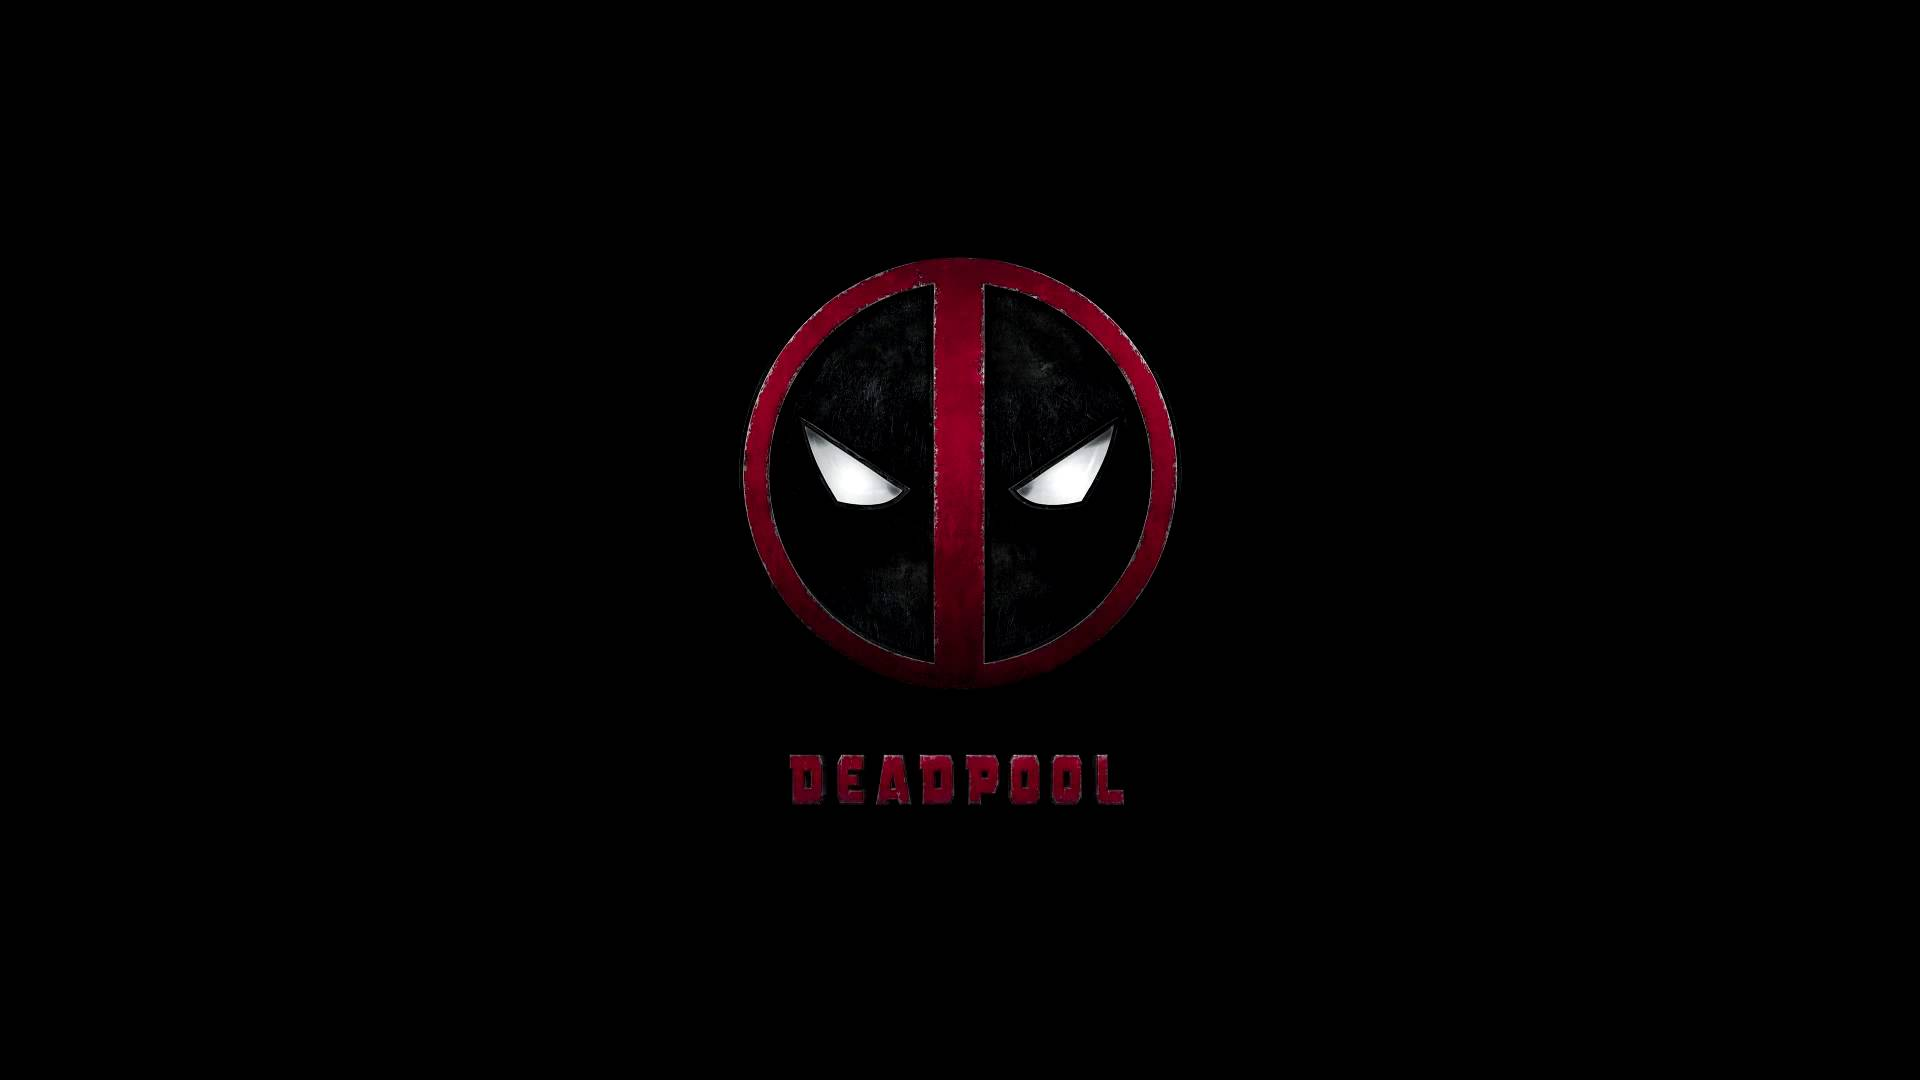 Deadpool Logo Wallpaper Phone